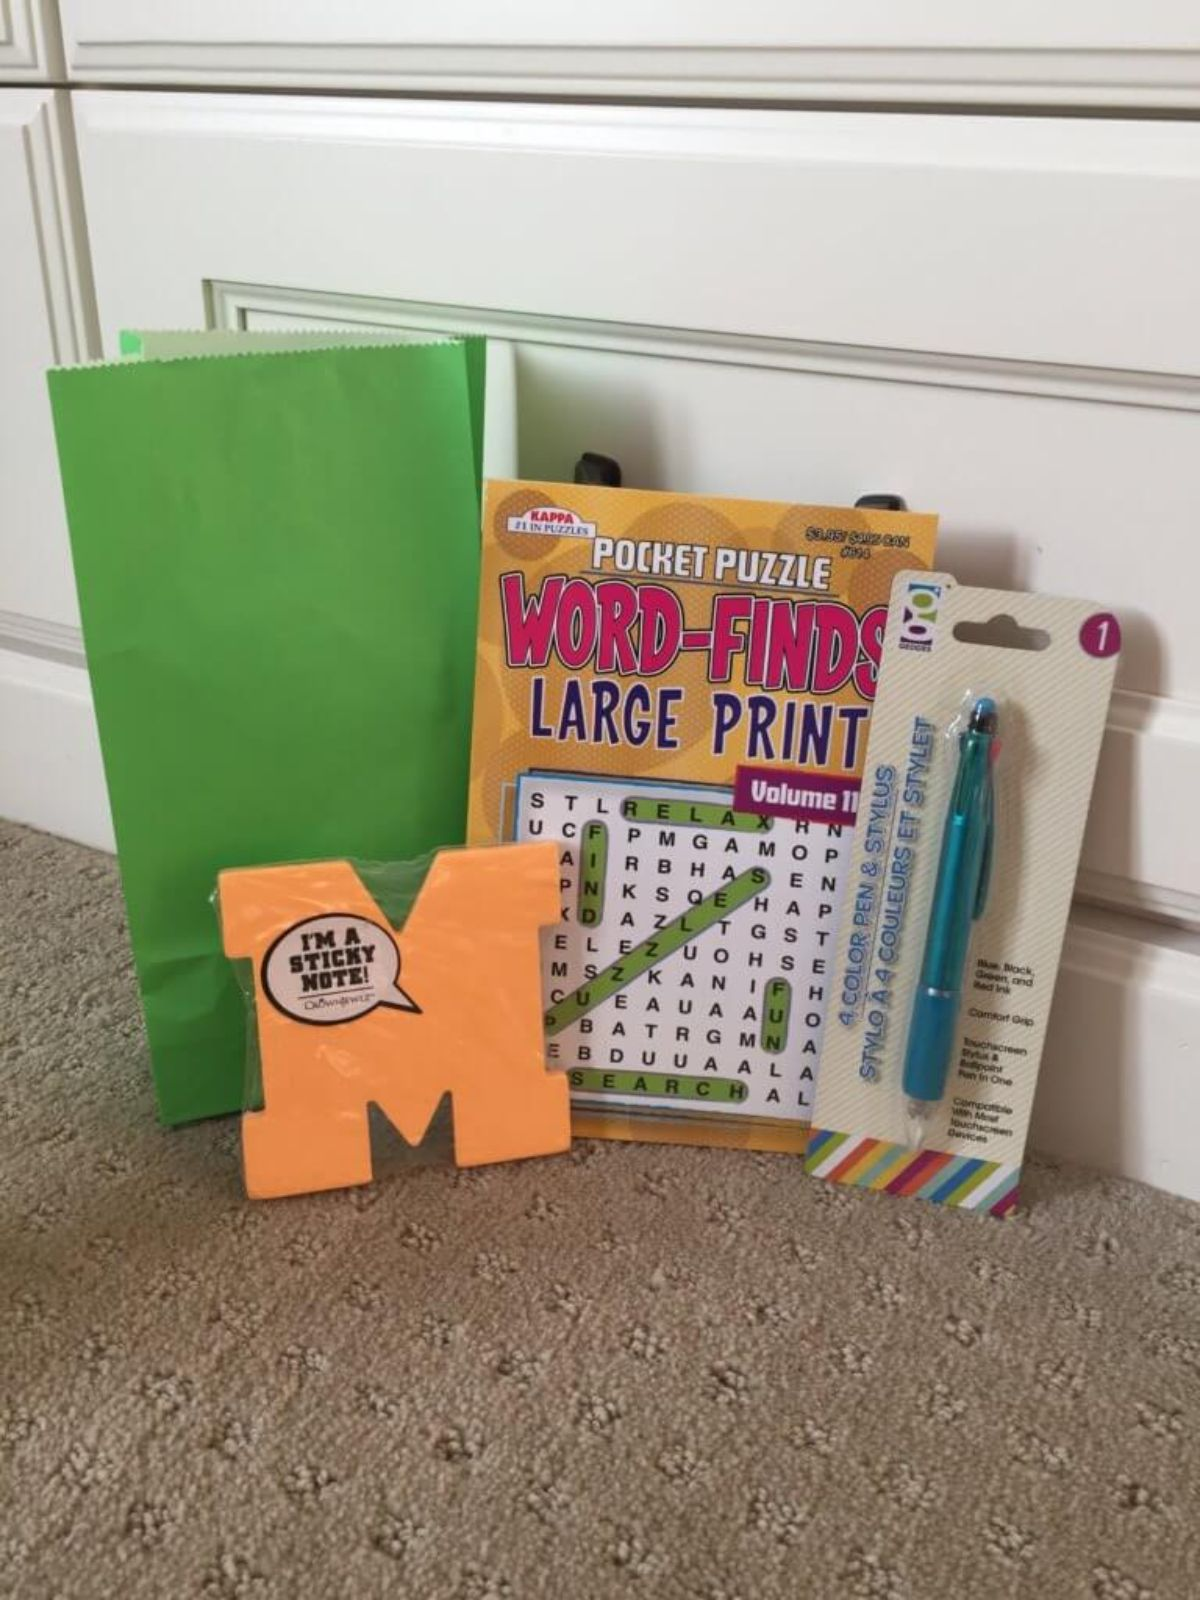 on the floor in front of a door is a green paper bag with a pocket puzzle, pen and sticky notes in front